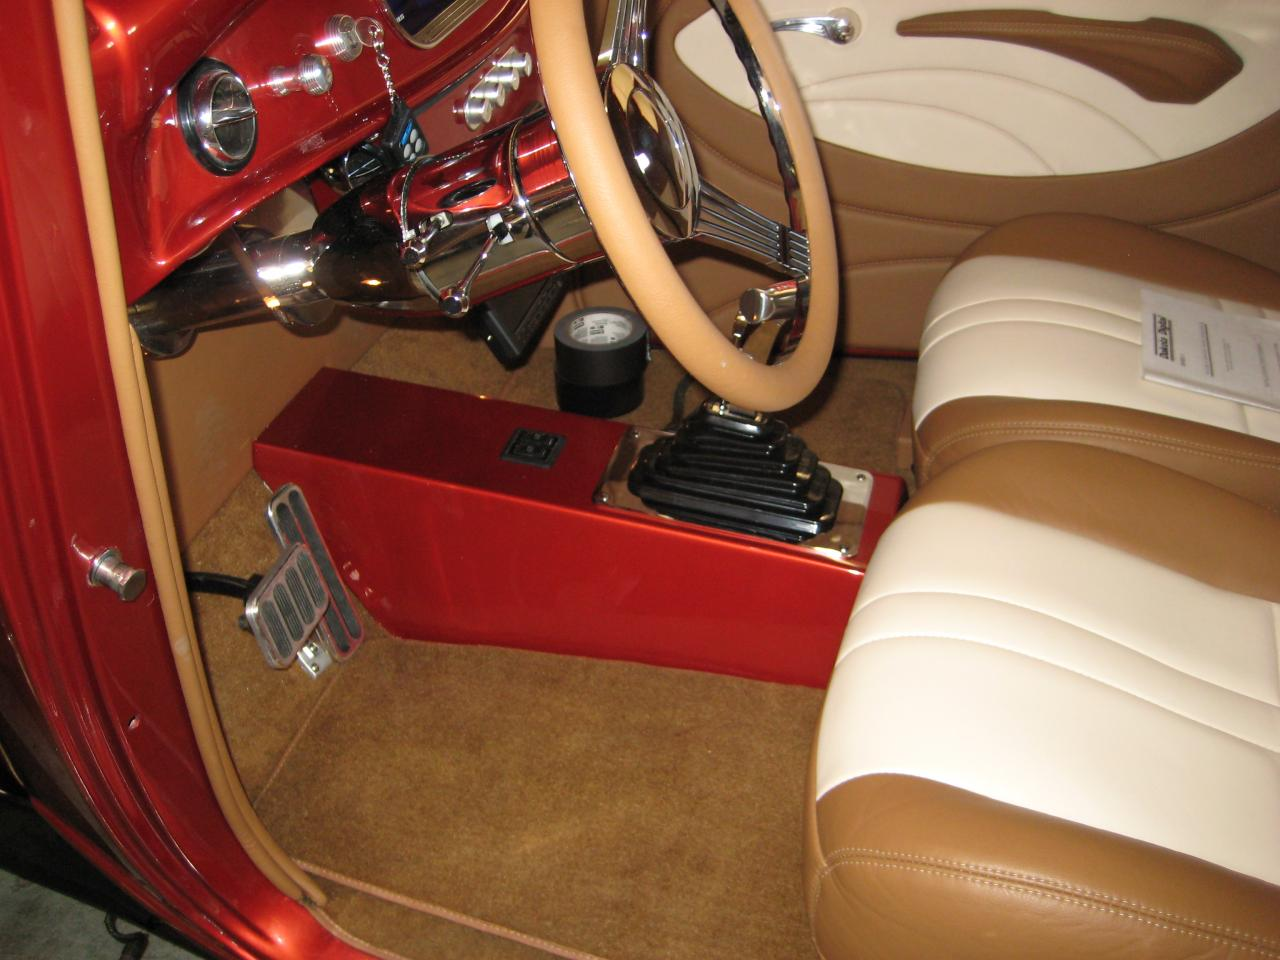 Auto Upholstery Repair Classic Car Restoration Shop Specializing In Handmade Interiors And